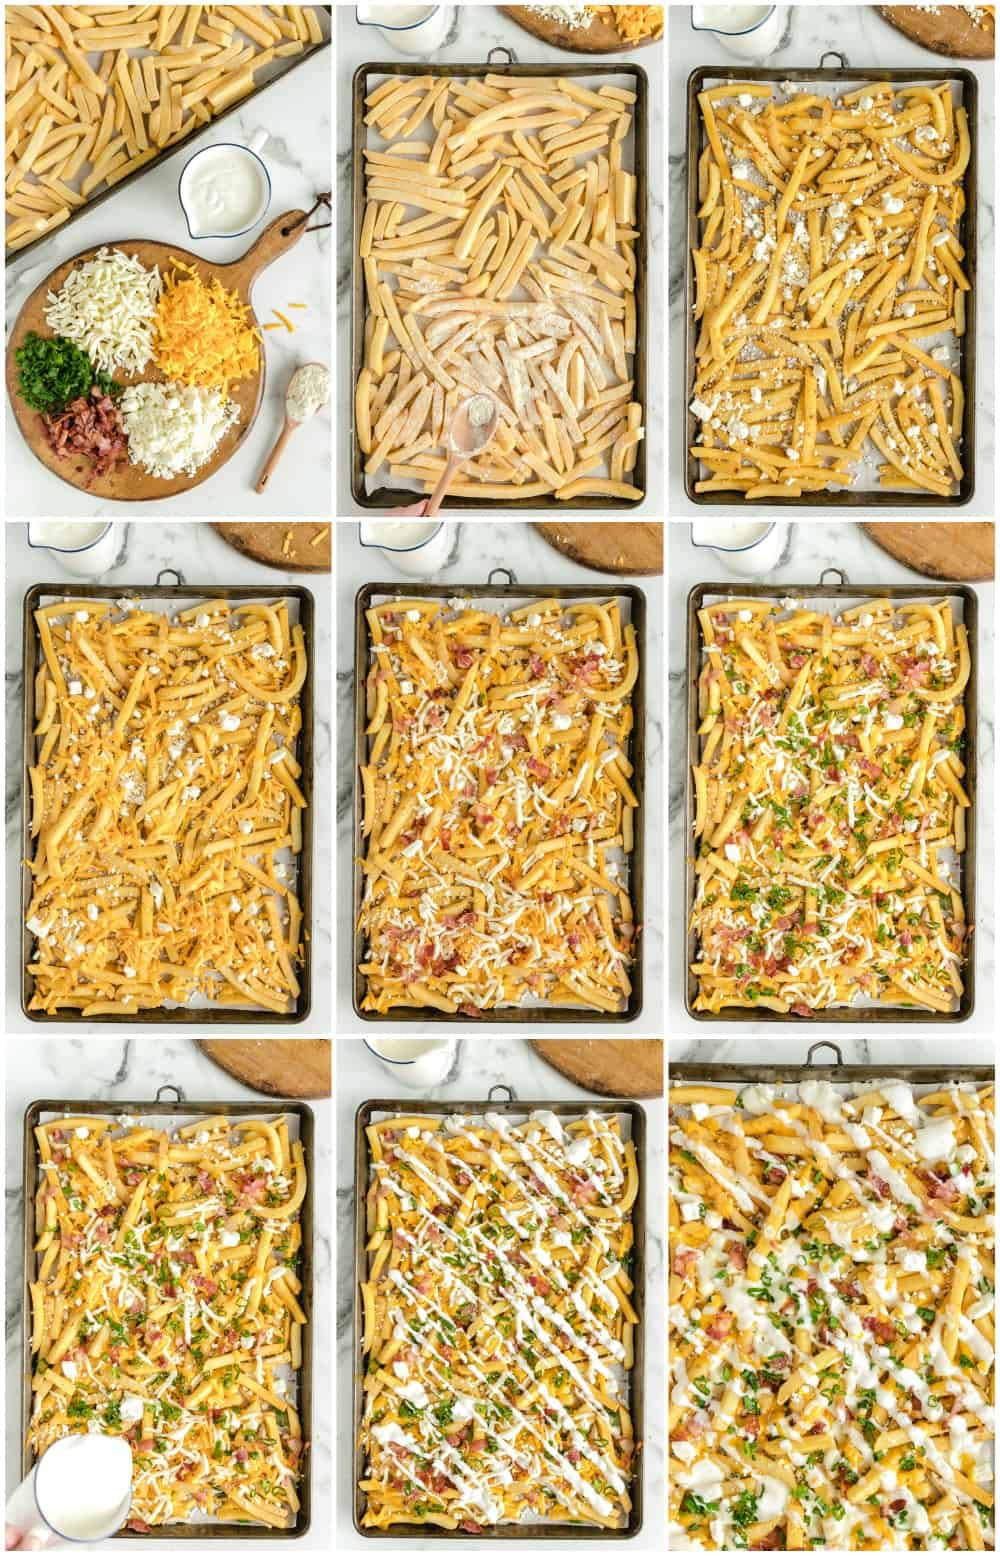 how to make bacon ranch cheese fries: step by step process shot photos of making cheese fries